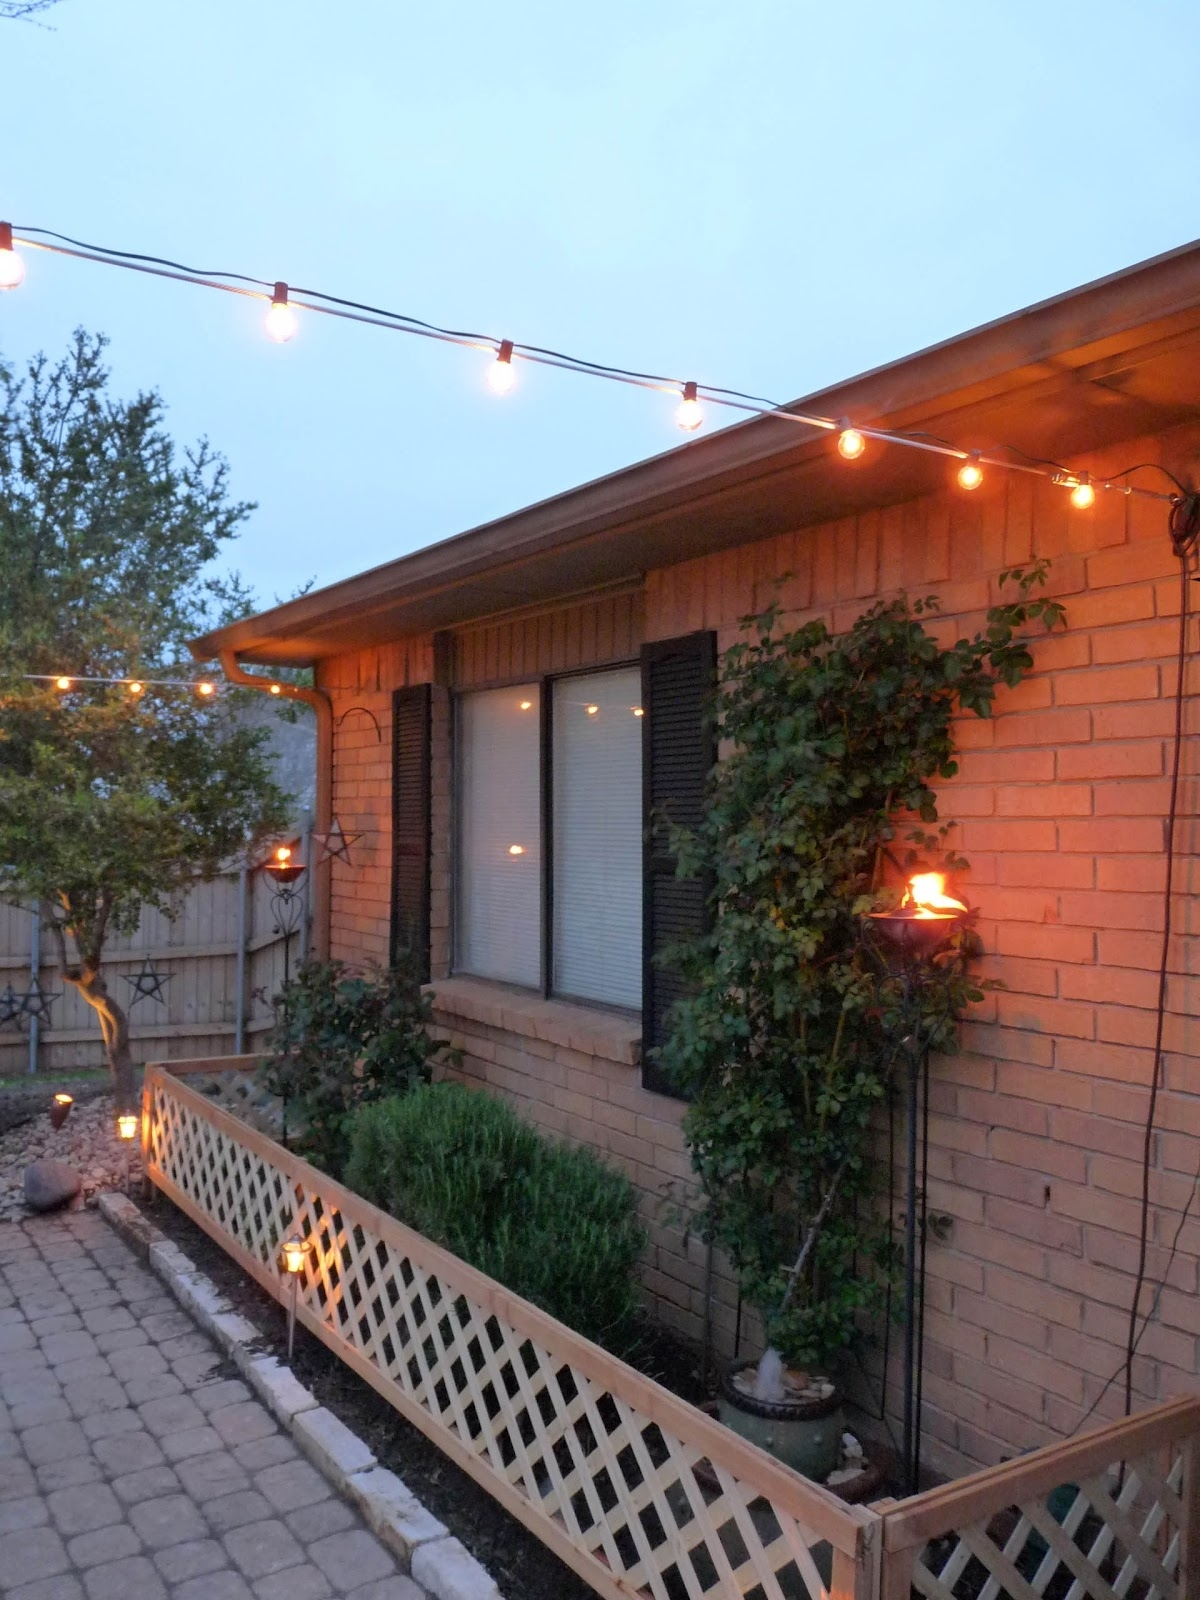 Hanging Outdoor Lights On Wire Throughout Best And Newest The Happy Homebodies: Diy: Stringing Patio Cafe Lights (Gallery 7 of 20)